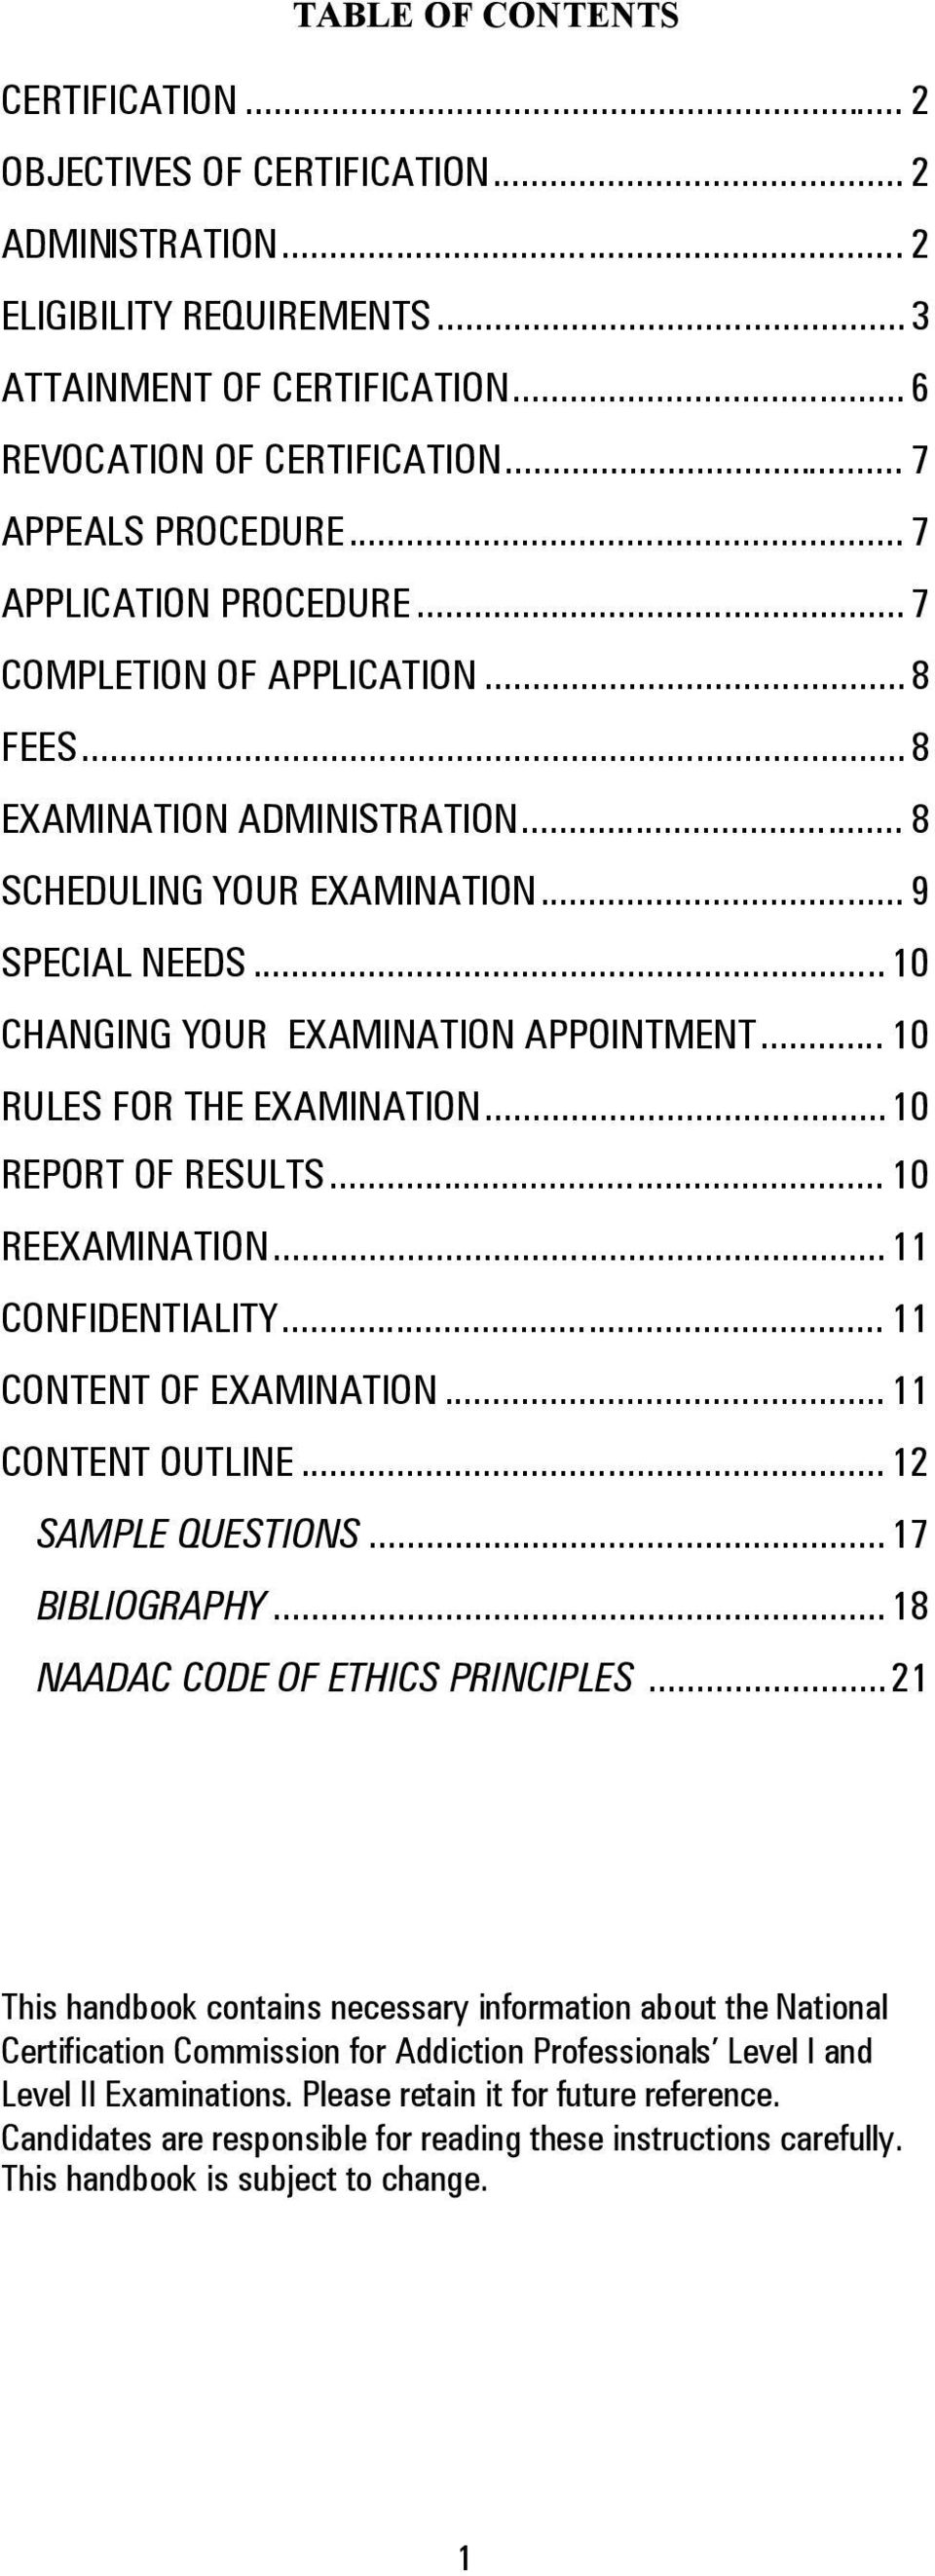 .. 10 CHANGING YOUR EXAMINATION APPOINTMENT... 10 RULES FOR THE EXAMINATION...10 REPORT OF RESULTS... 10 REEXAMINATION... 11 CONFIDENTIALITY... 11 CONTENT OF EXAMINATION... 11 CONTENT OUTLINE.